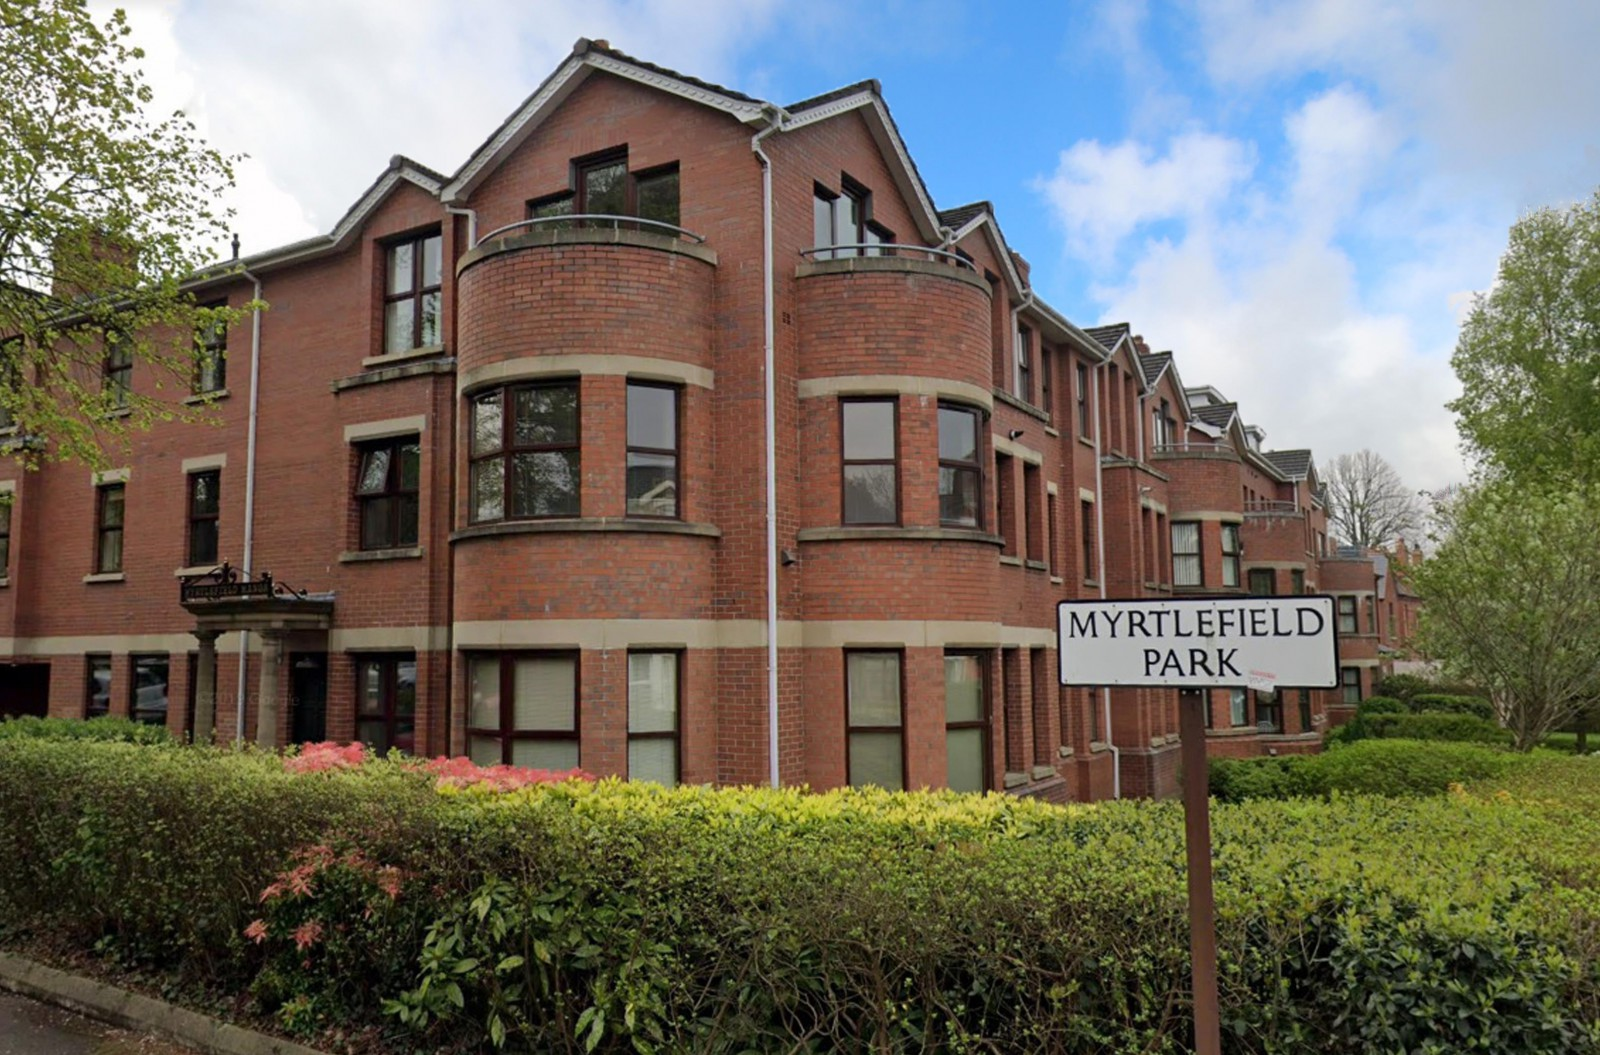 9 Myrtlefield Manor, Myrtlefield Park, Lisburn Road, Belfast, BT9 6NE